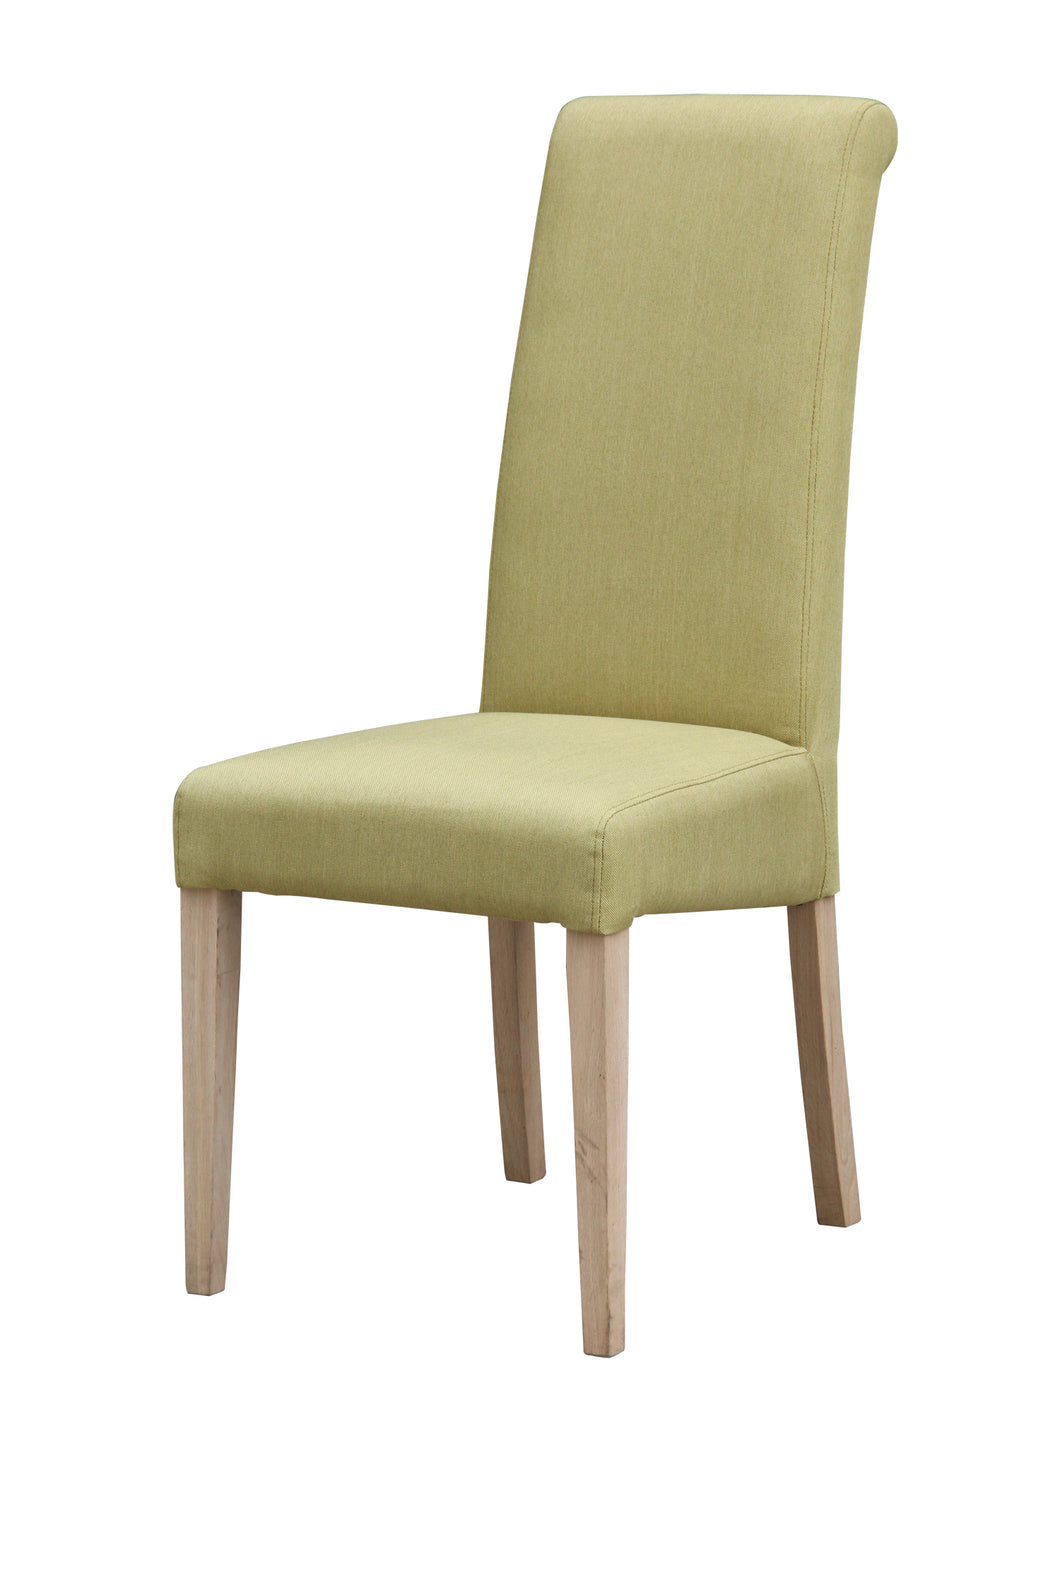 Hanbury Fabric Dining Chair Solid Rubberwood Olive (Set of 2)